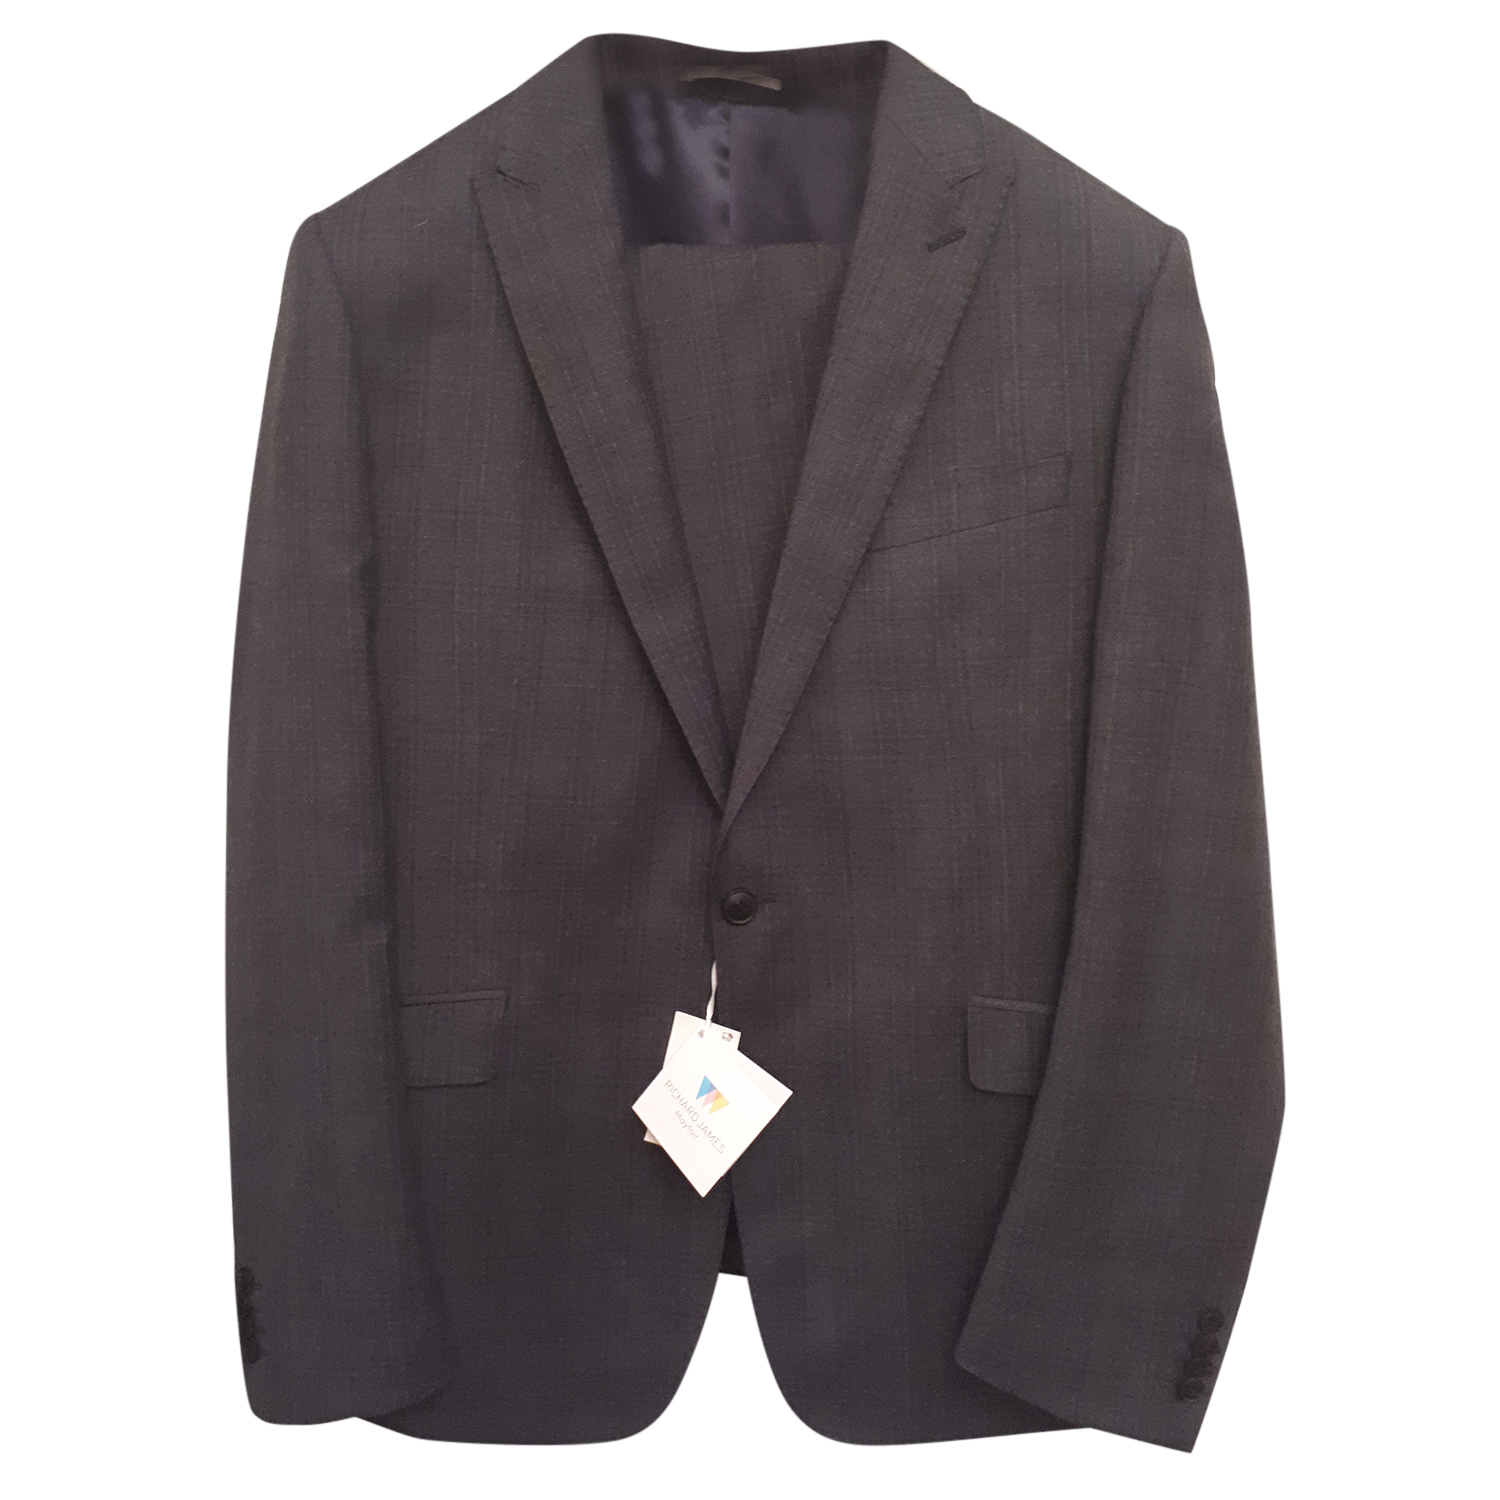 Richard James wool check suit